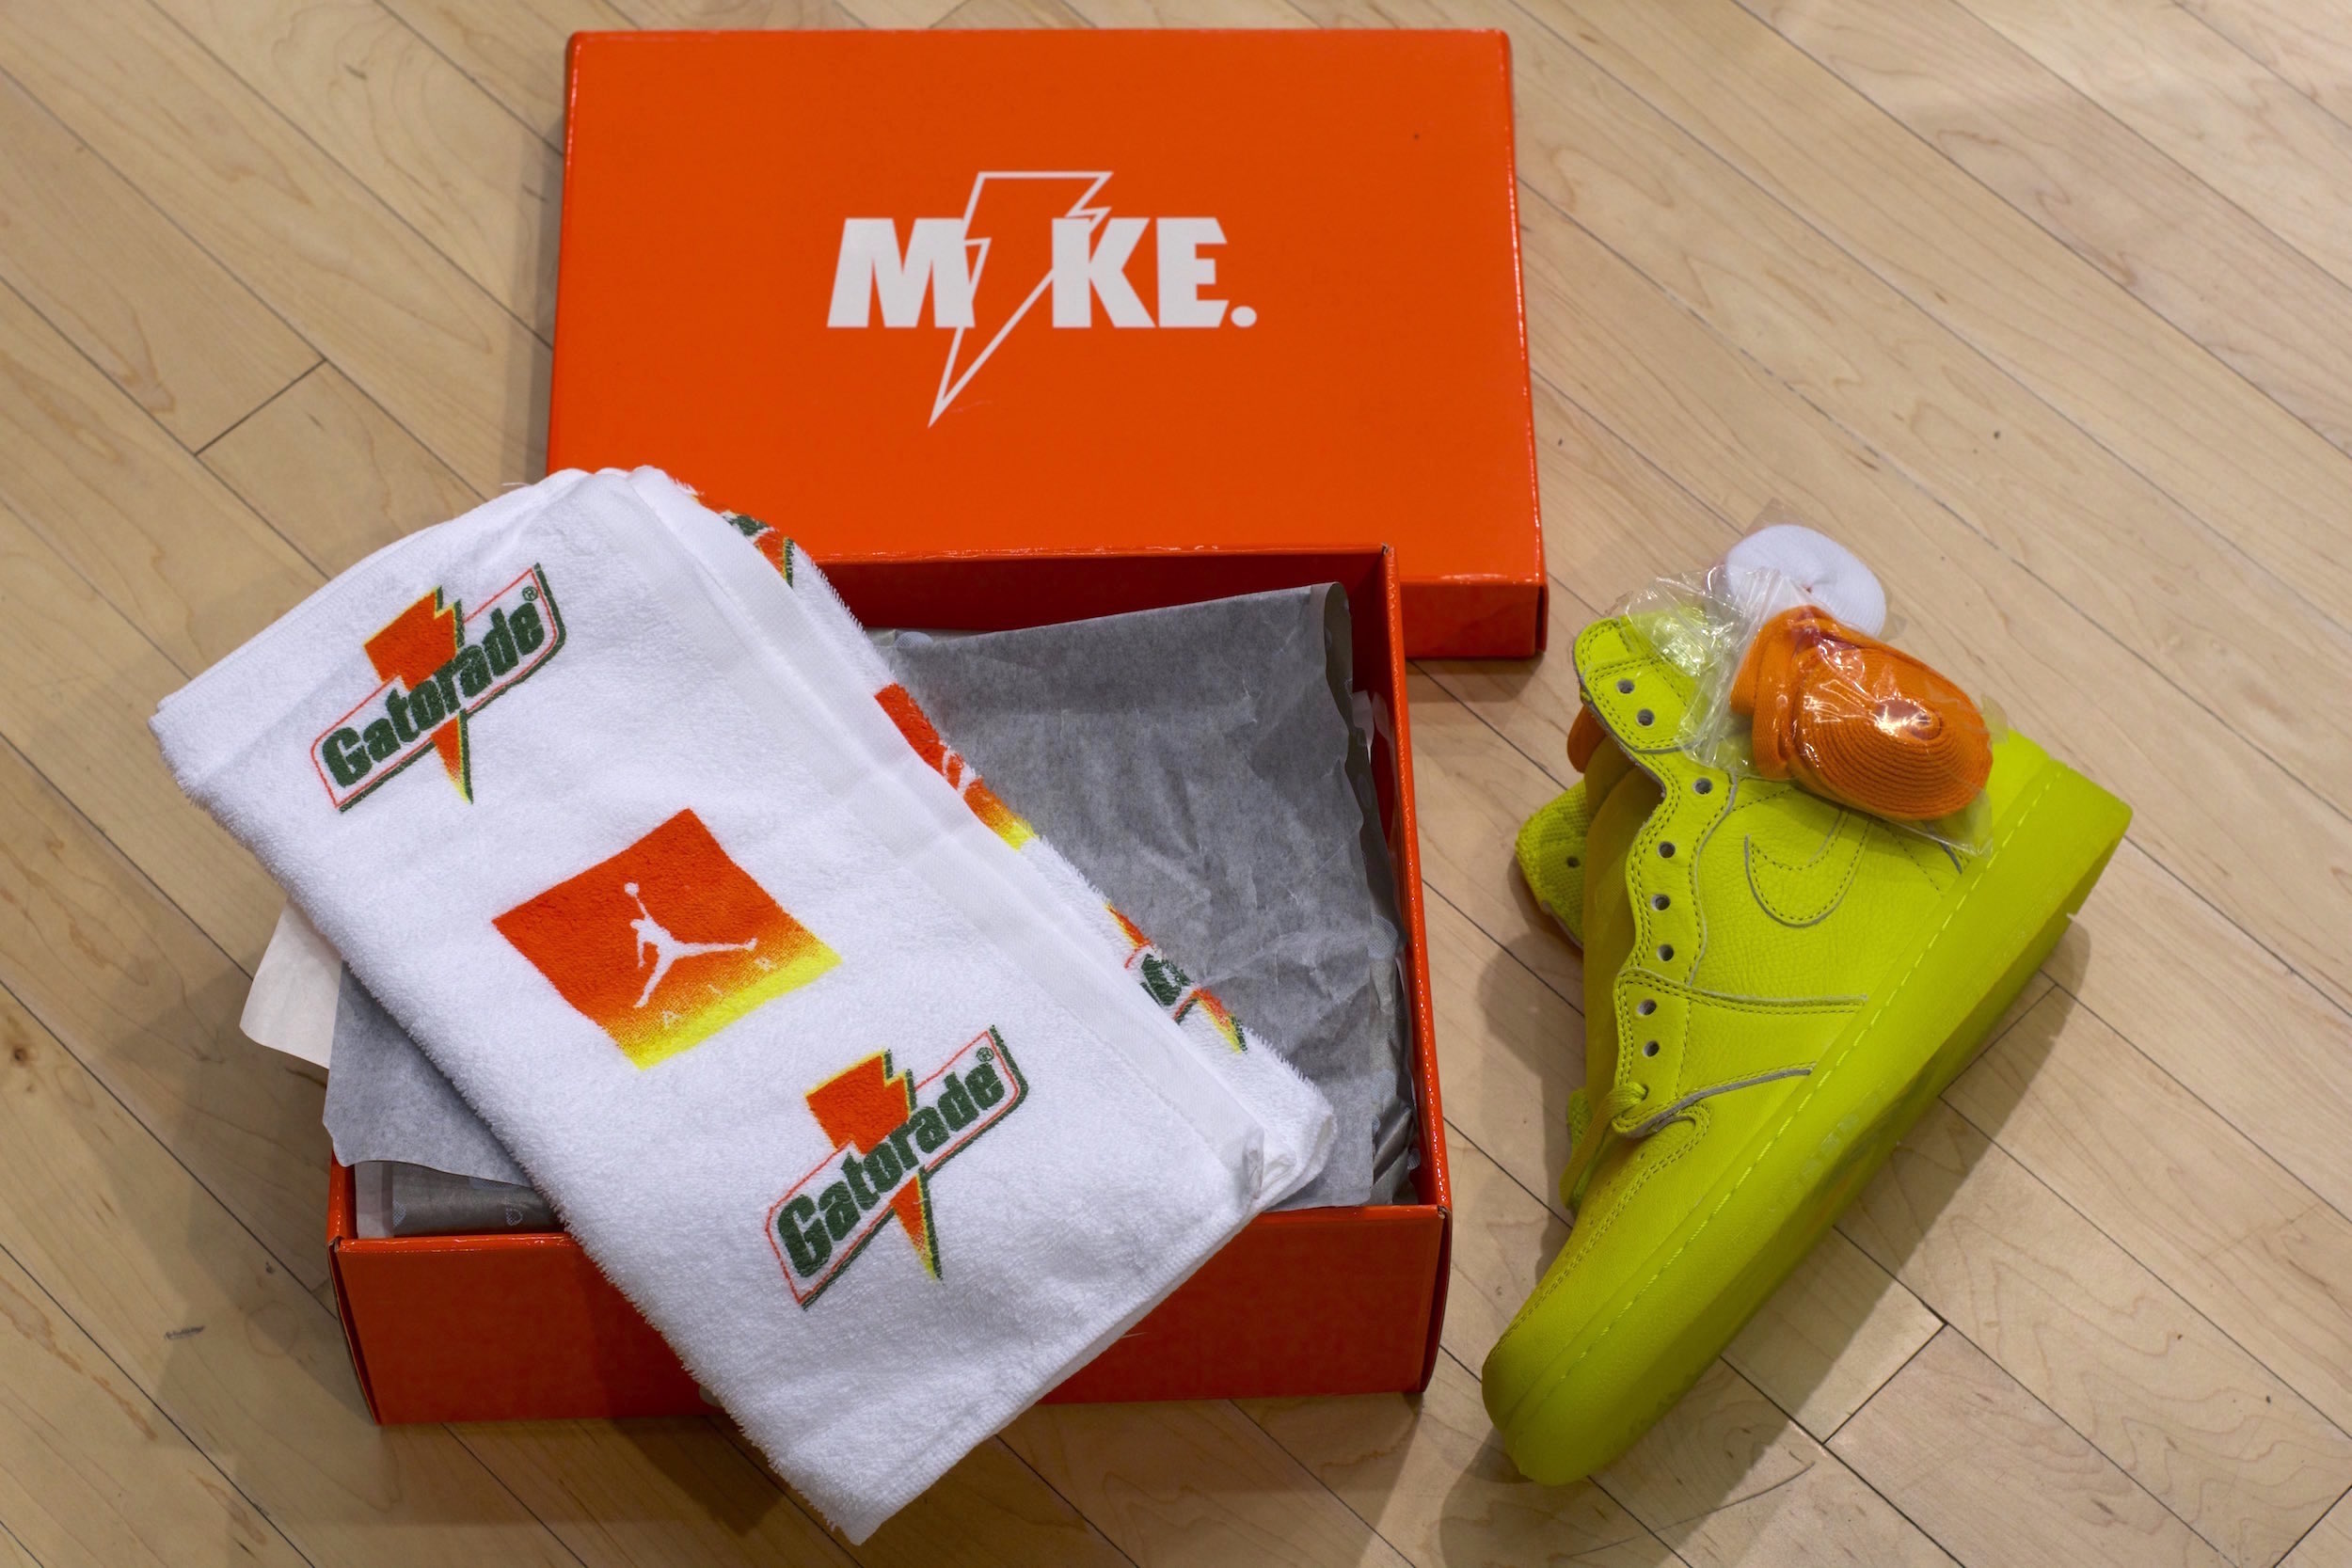 gatorade air jordan 1 like mike pack